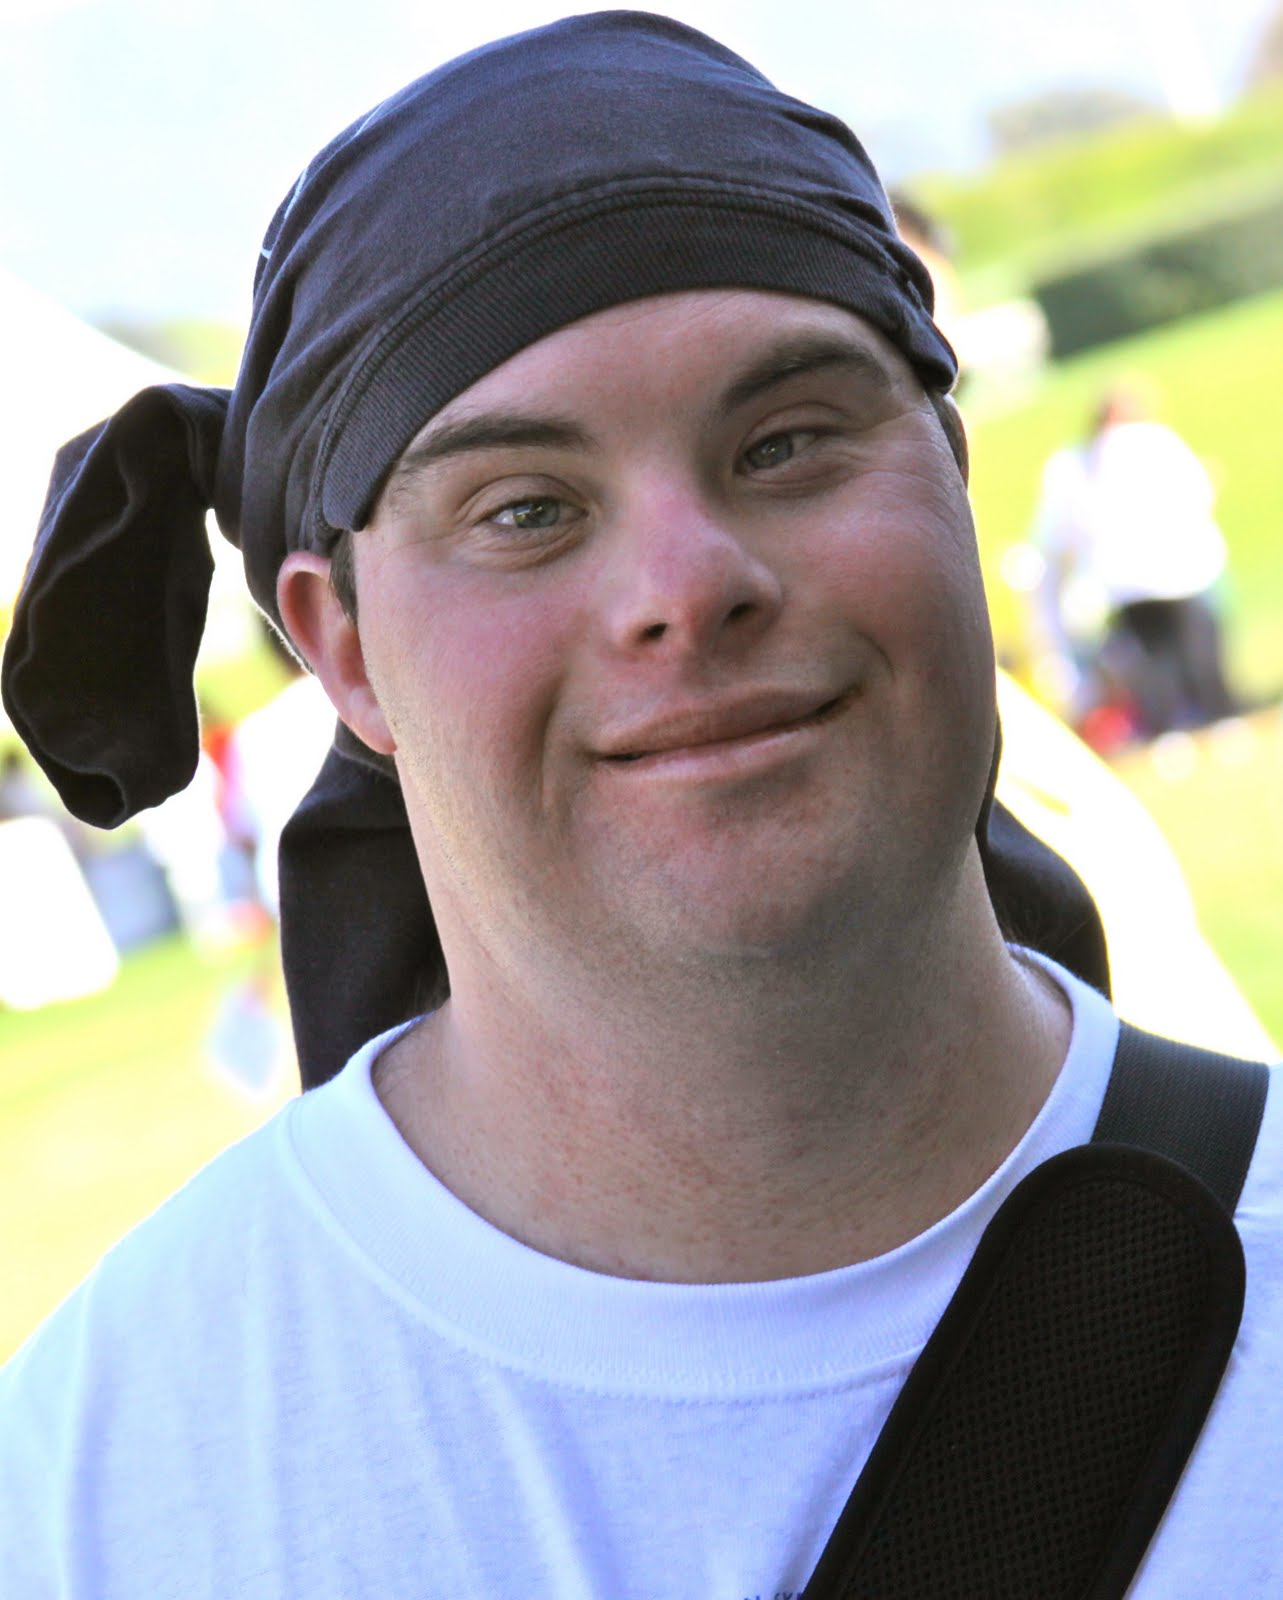 Share your down syndrome photos adults your